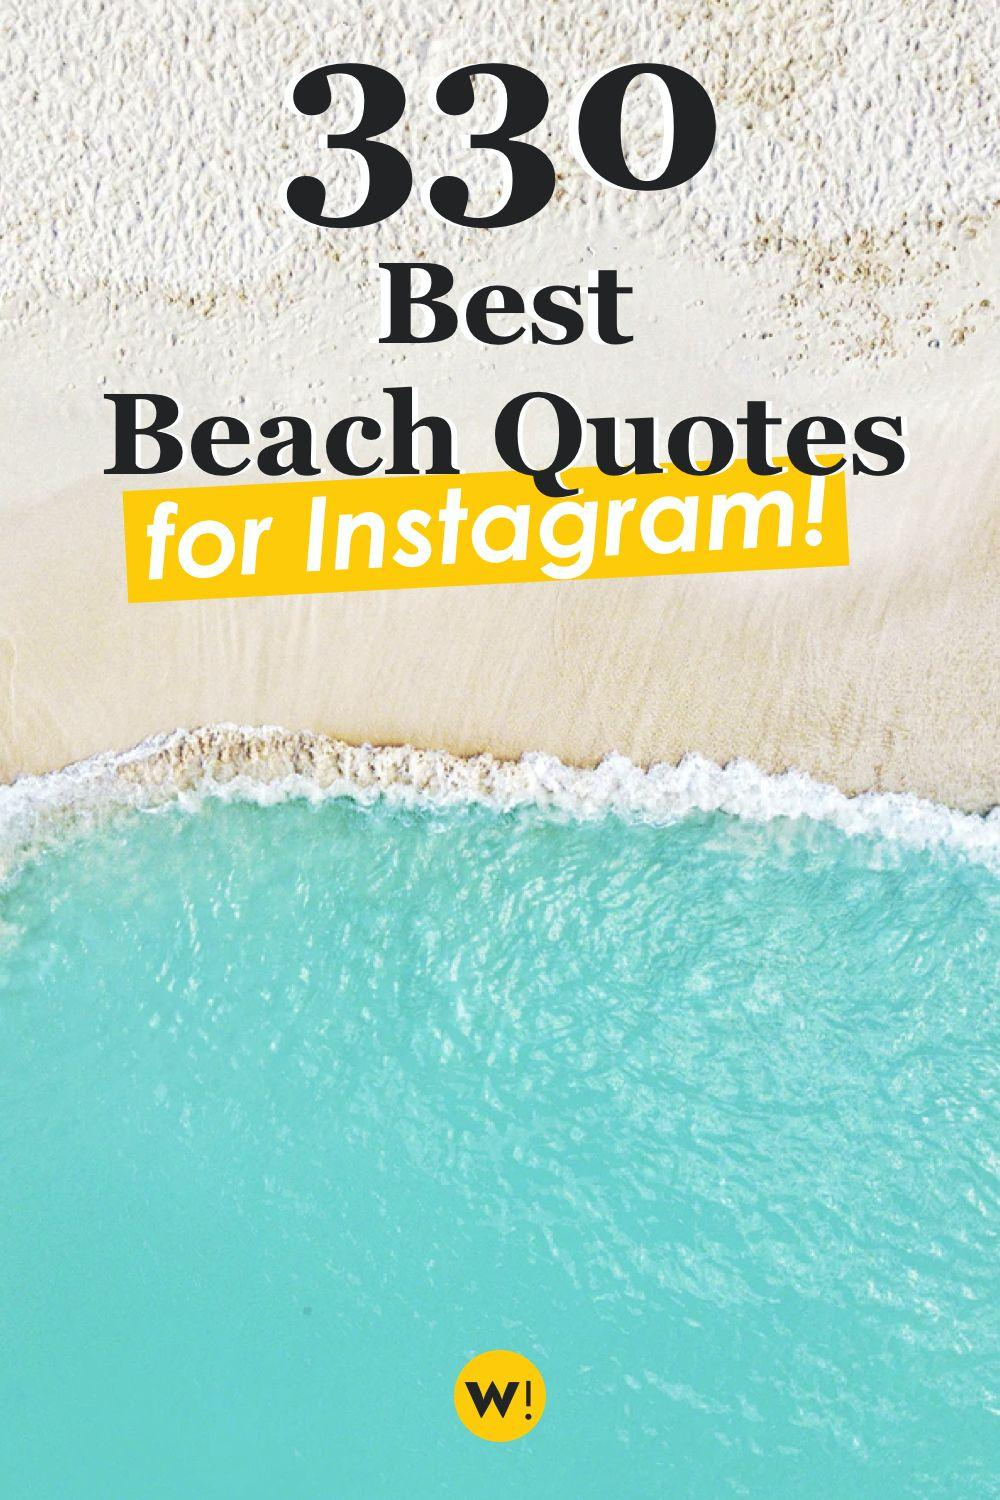 Looking for the best beach quotes for your Instagram photos? Find 330 best beach quotes and sayings to get you ready for summer! beach quotes instagram caption  cute beach quotes  beach quotes funny  beach quotes inspirational  summer beach quotes  take me to the beach quotes  family beach quotes